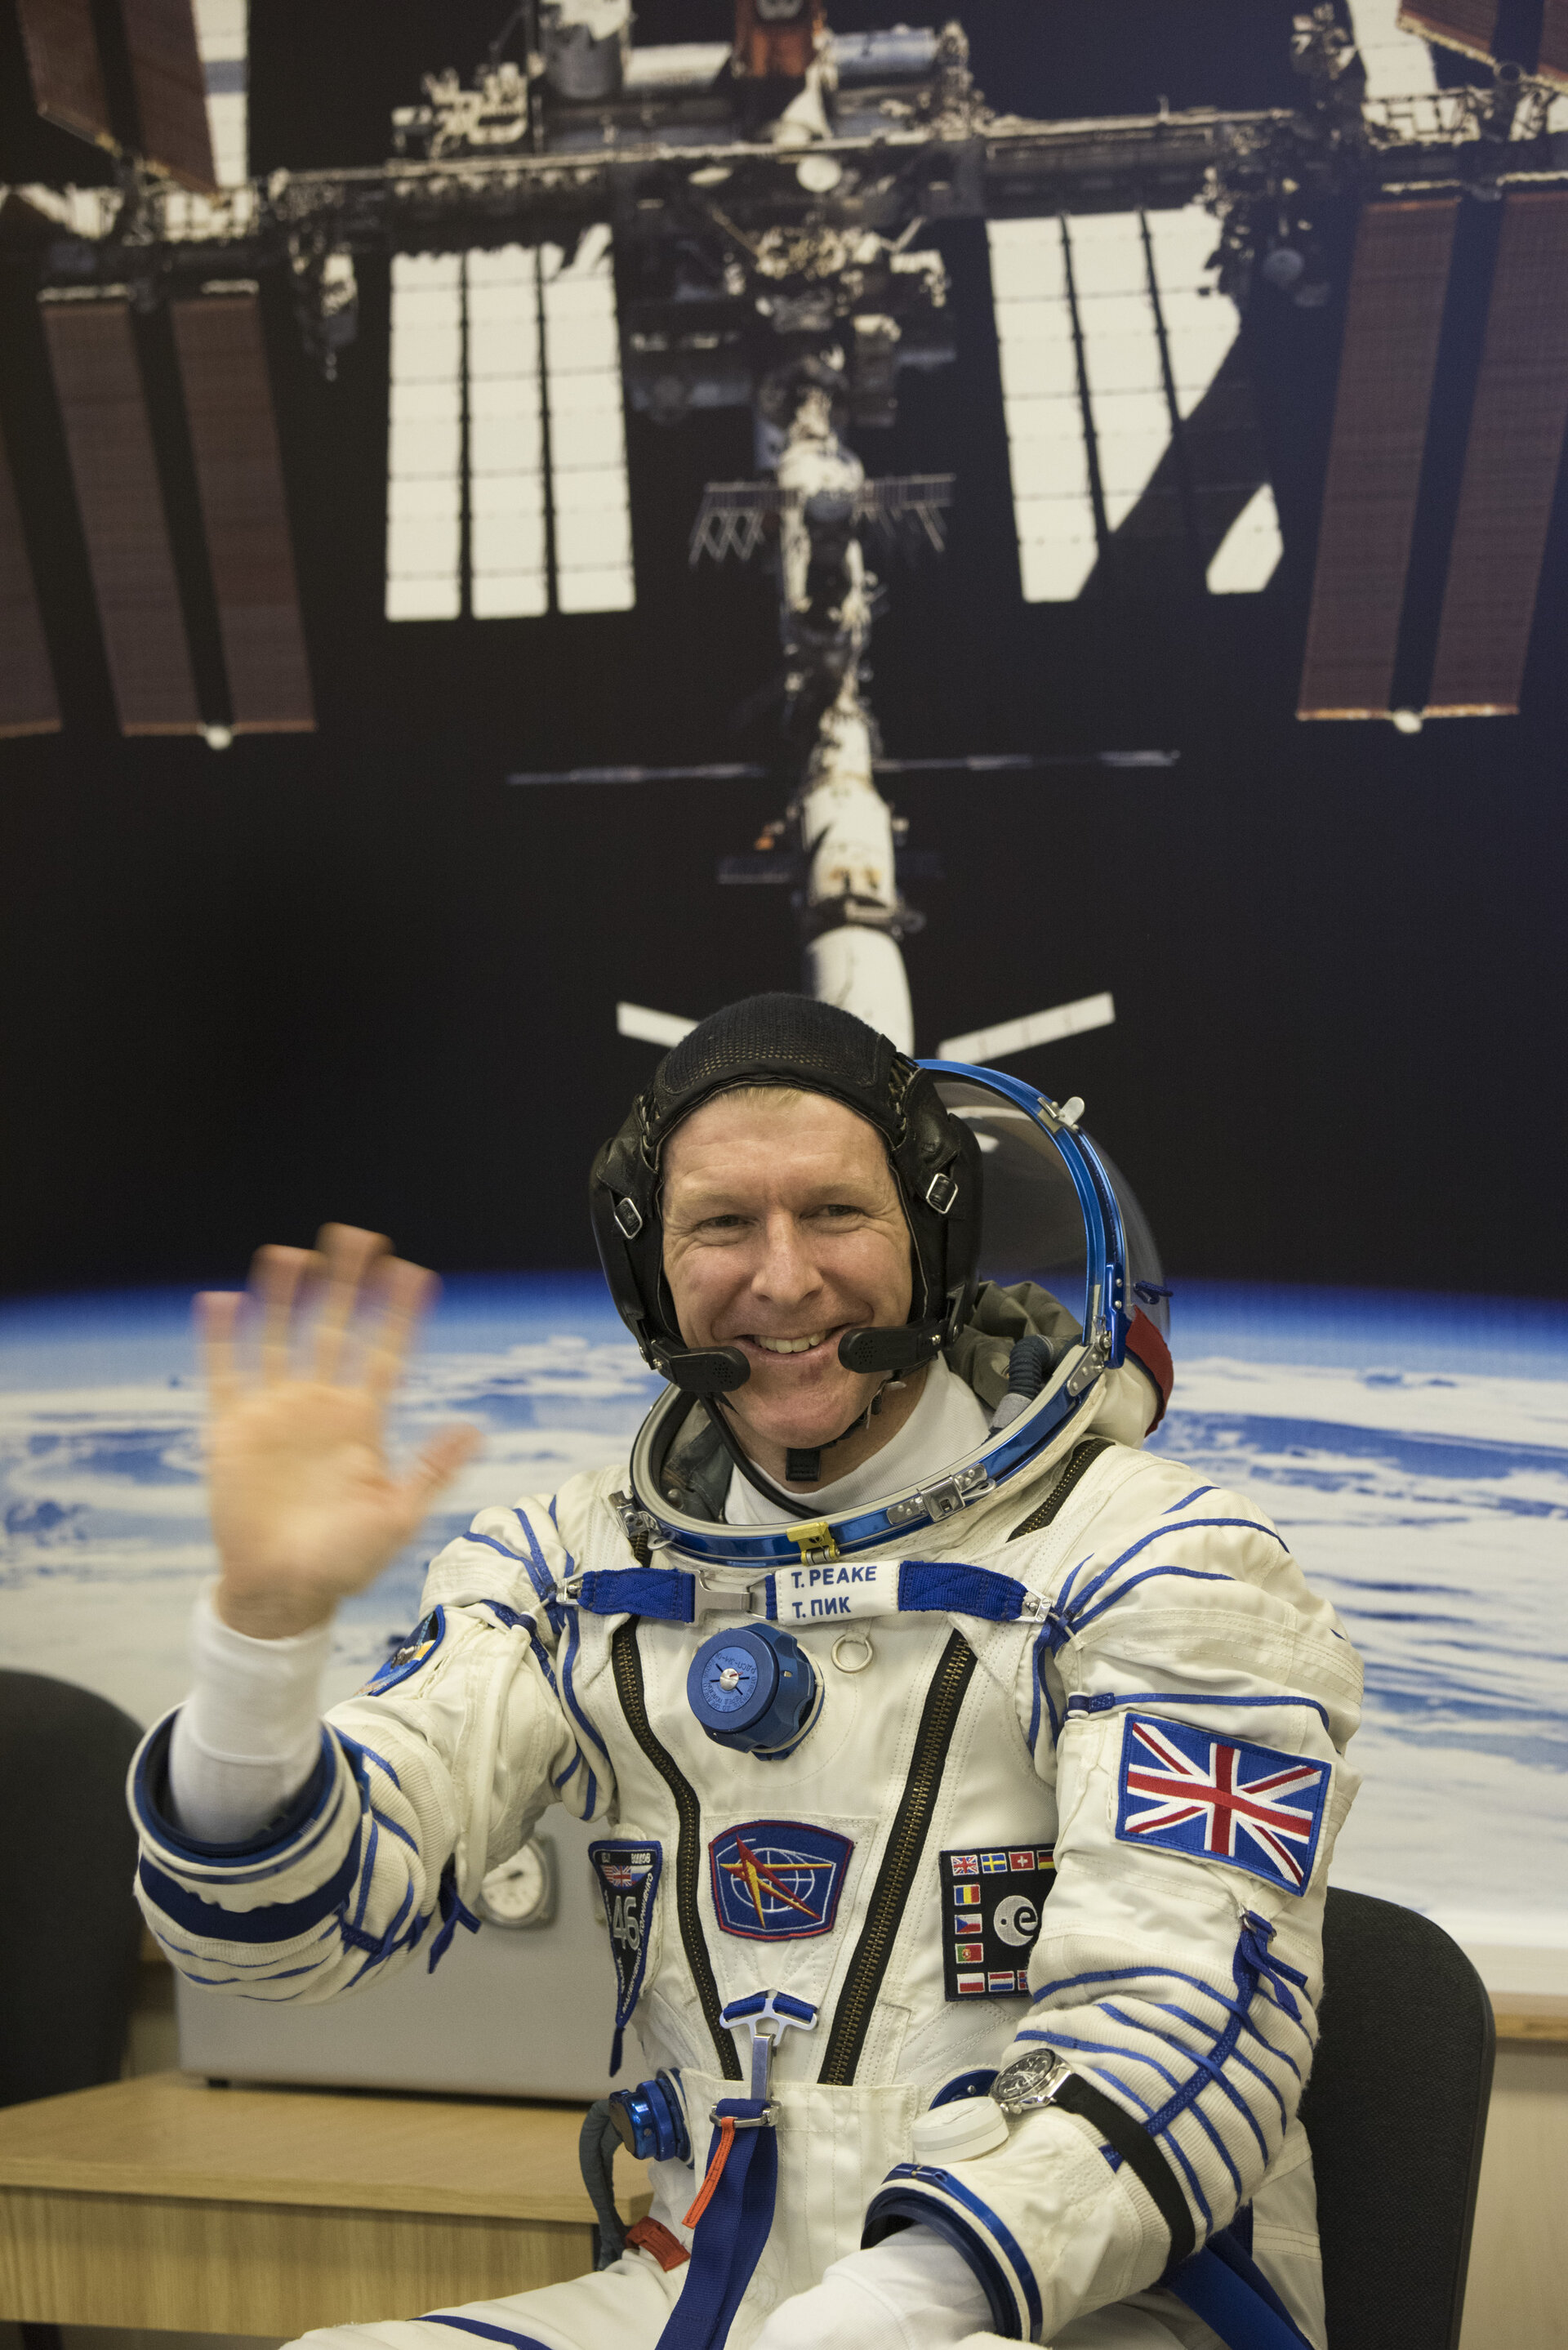 Tim Peake dressed in his Russian Sokol suit